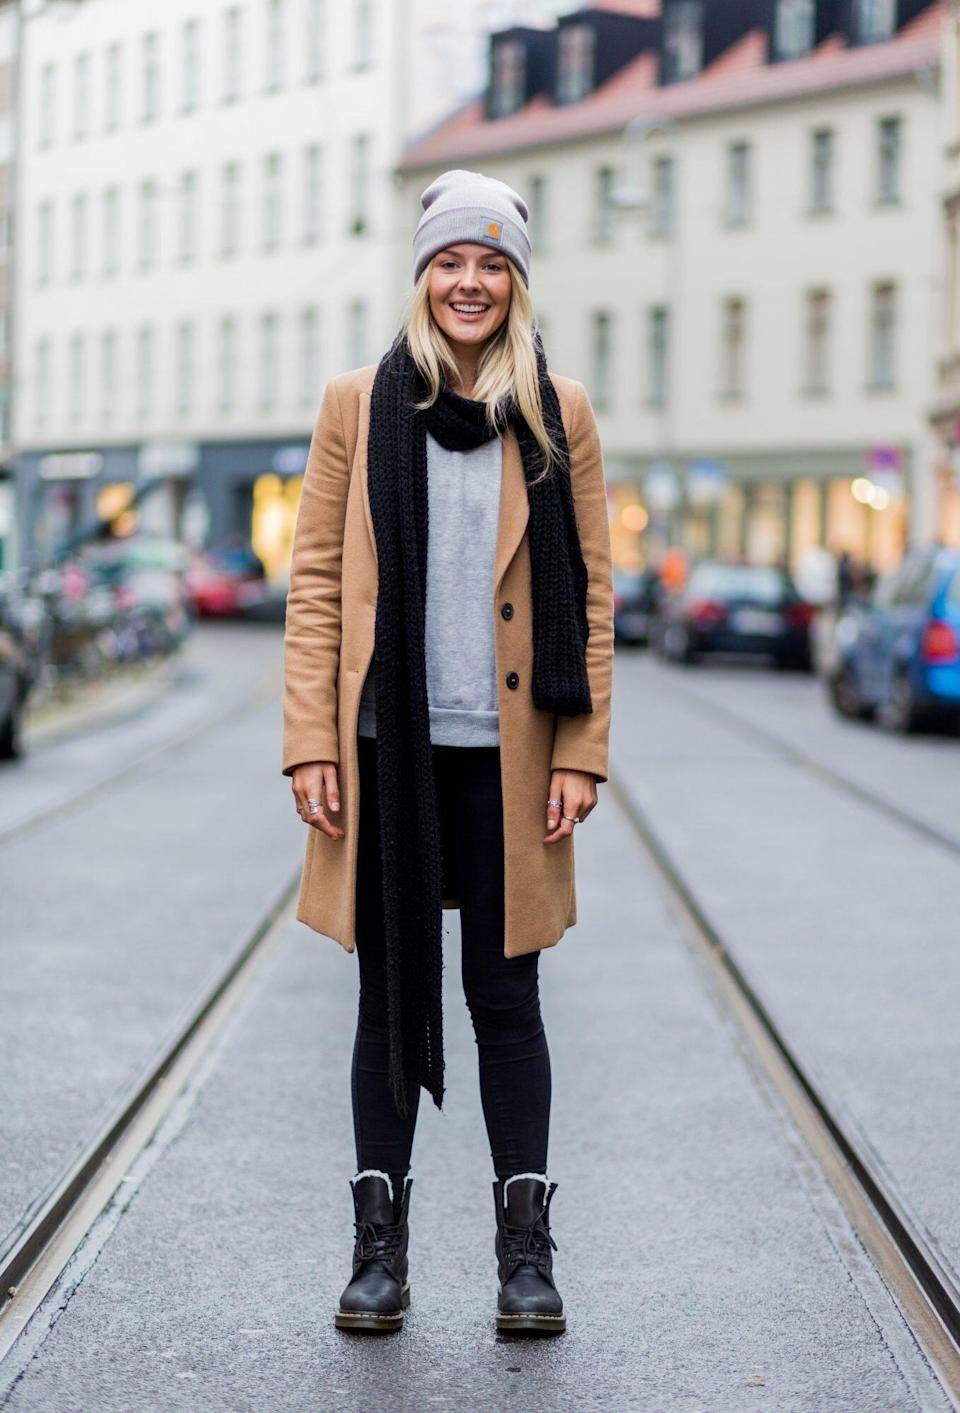 The Brand Behind the $17 Celeb-Loved Beanies Makes Leggings, Too